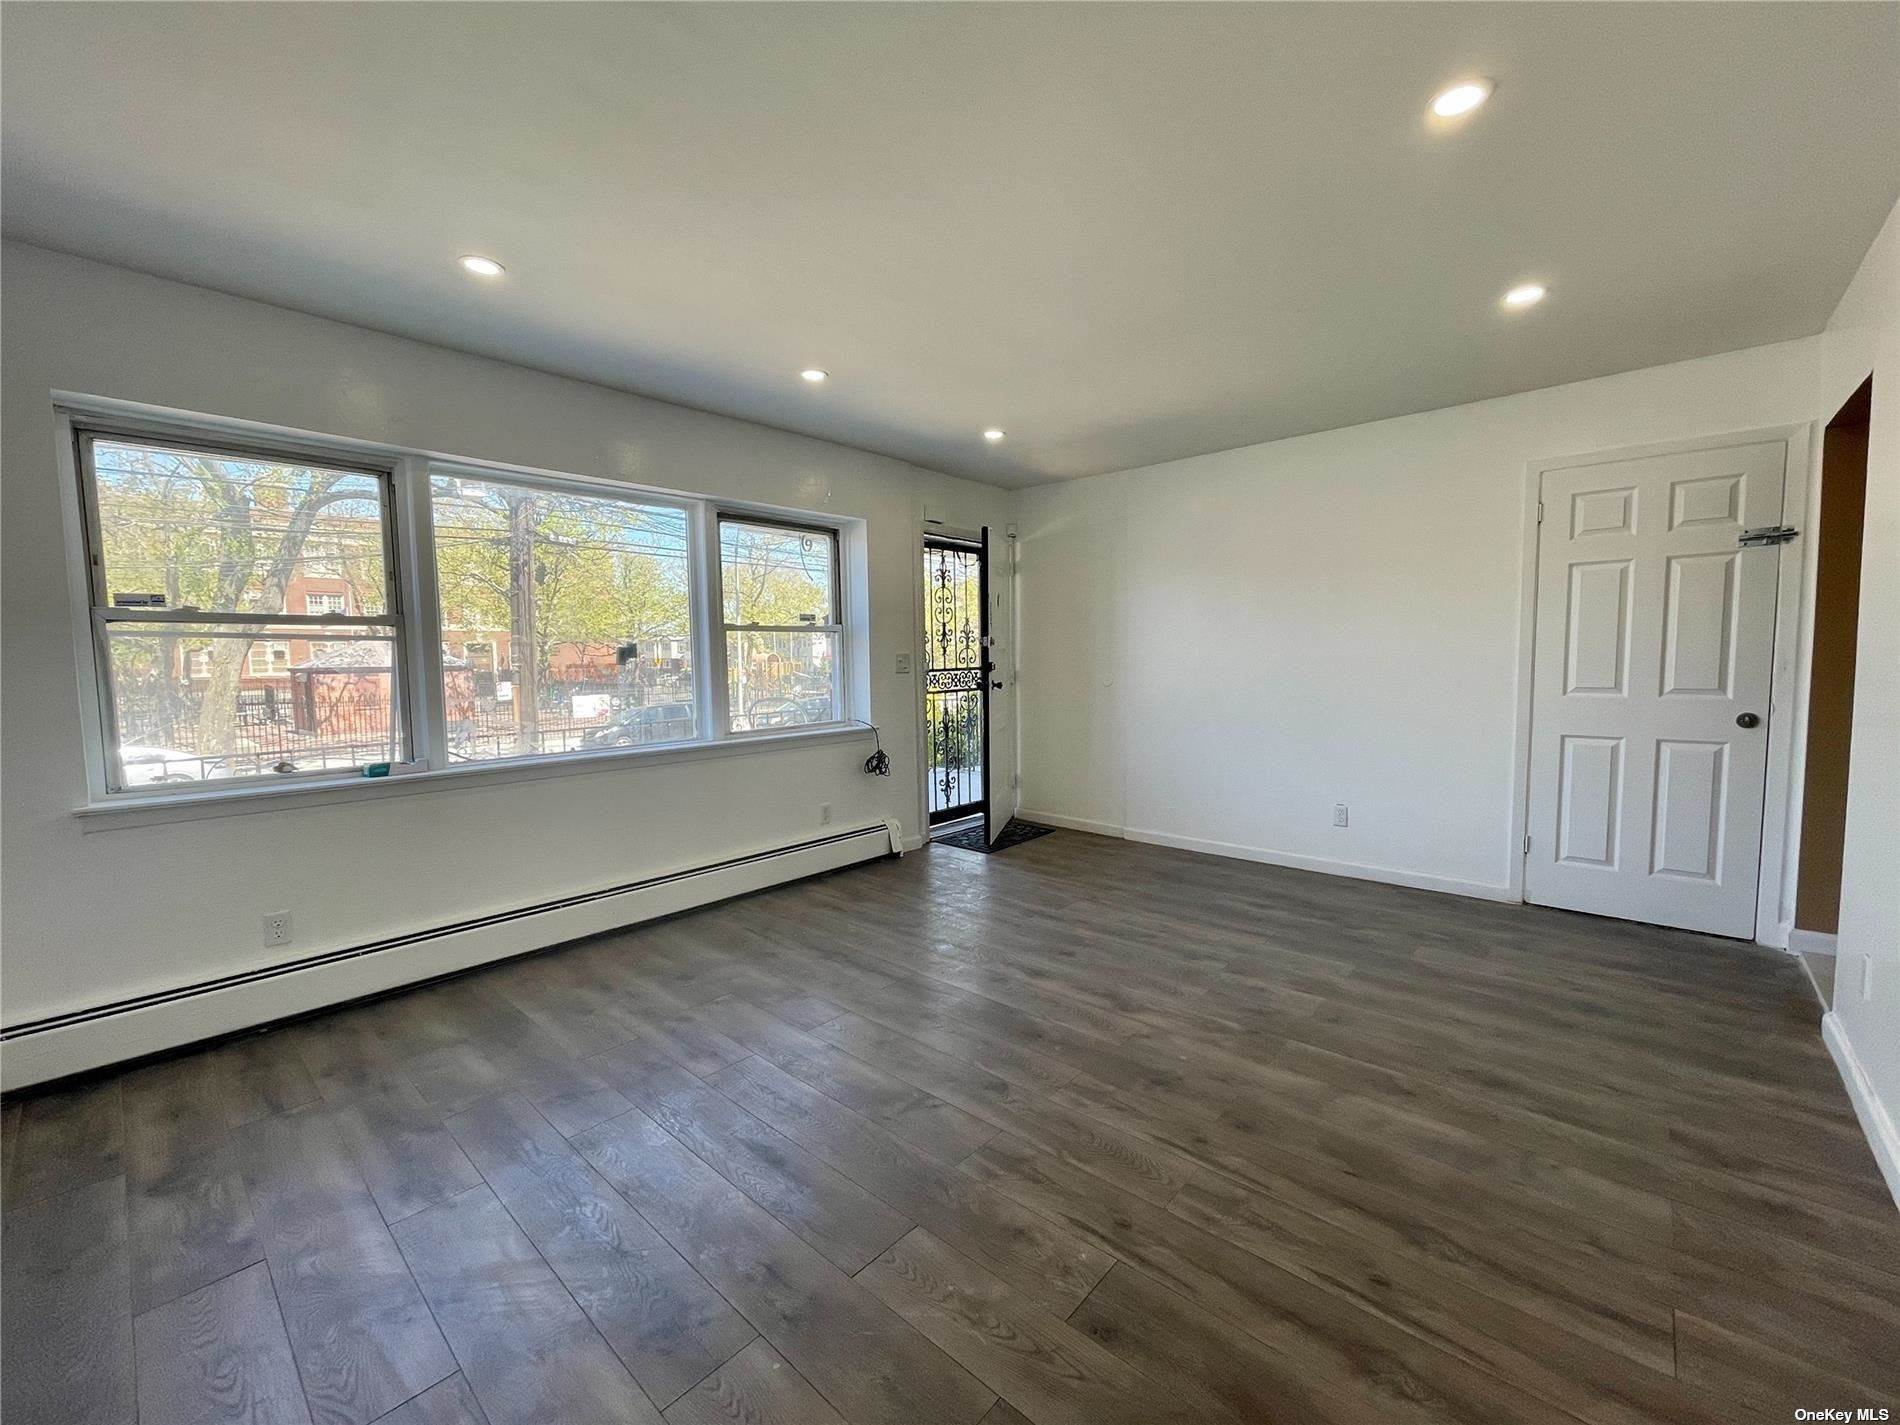 Residential Lease at 82-06 101st Avenue # 1st Fl Ozone Park, New York 11416 United States